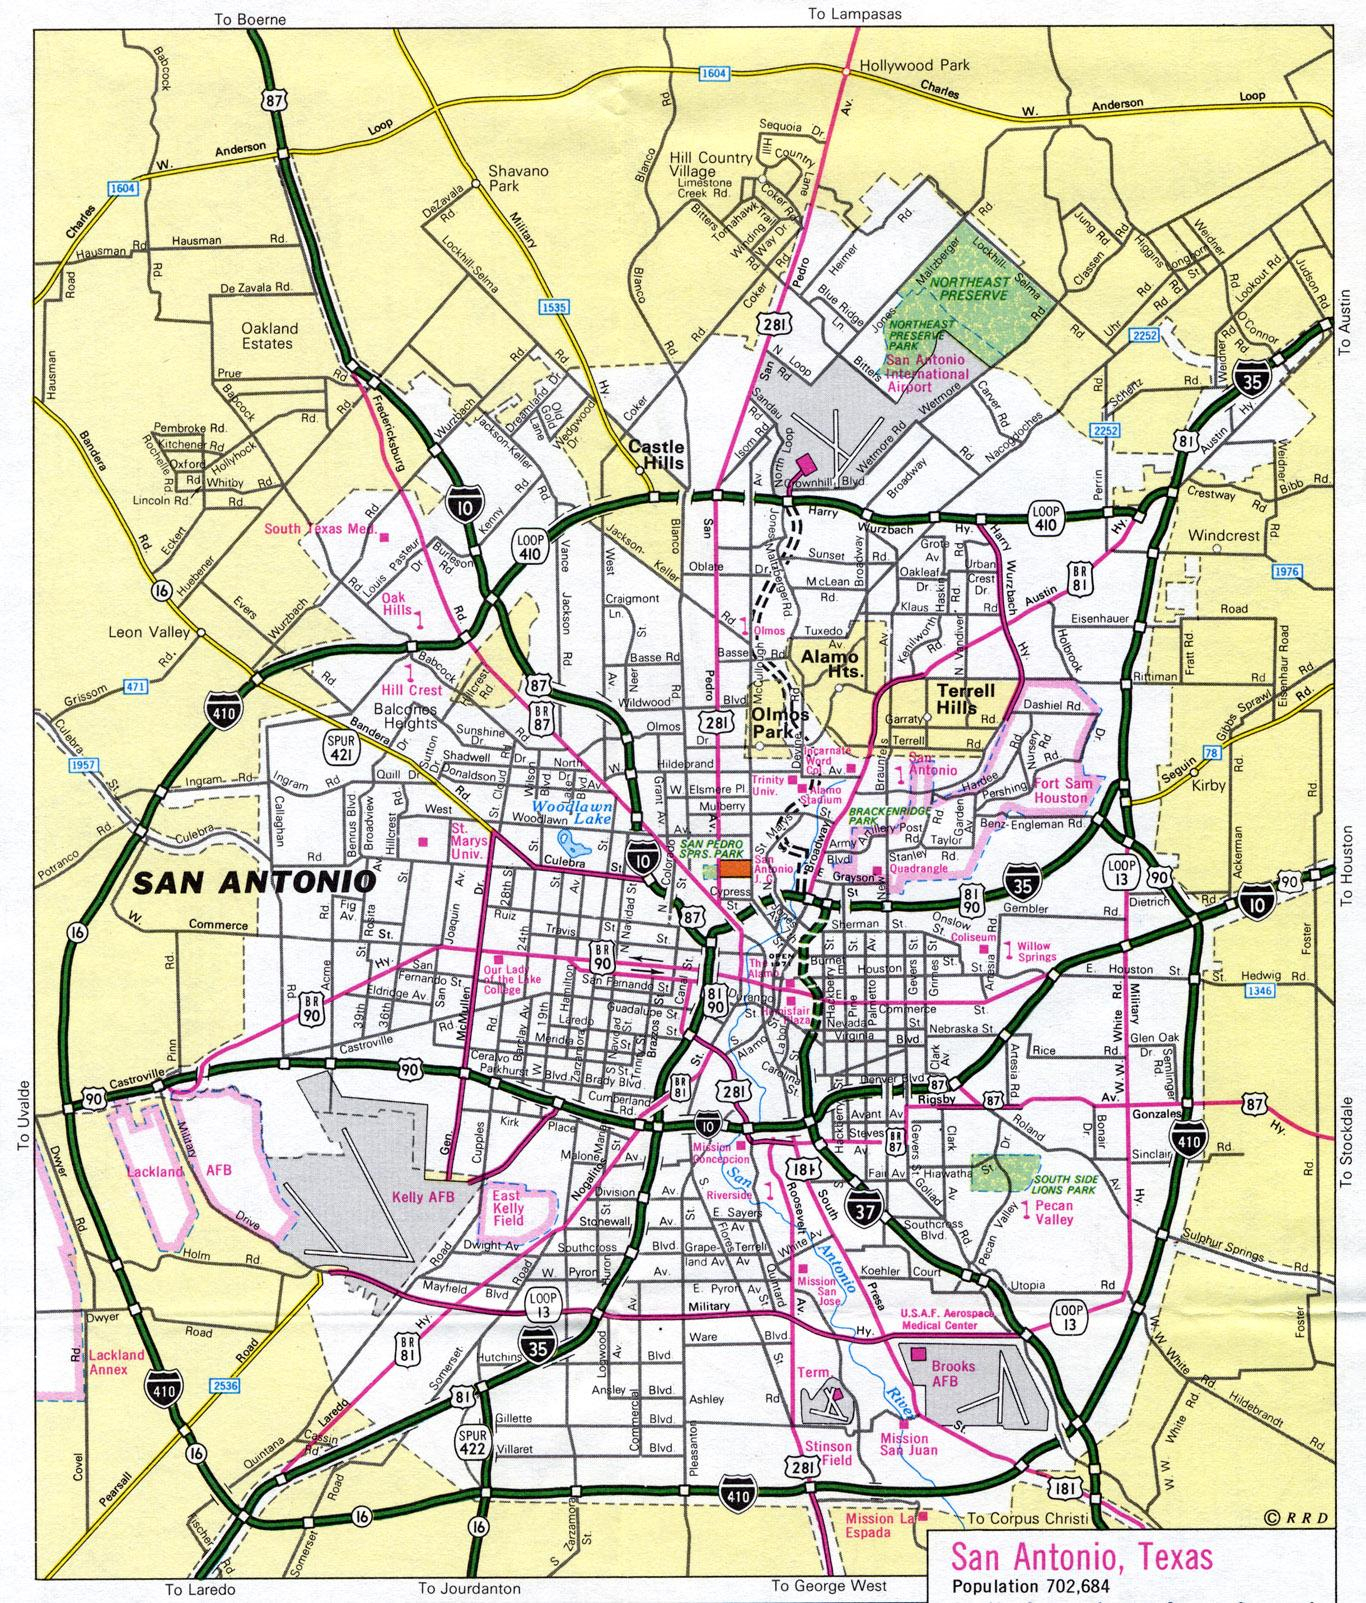 San Antonio Tx Carte - Carte De San Antonio, Texas (Texas - Usa) - Map Of San Antonio Texas Area